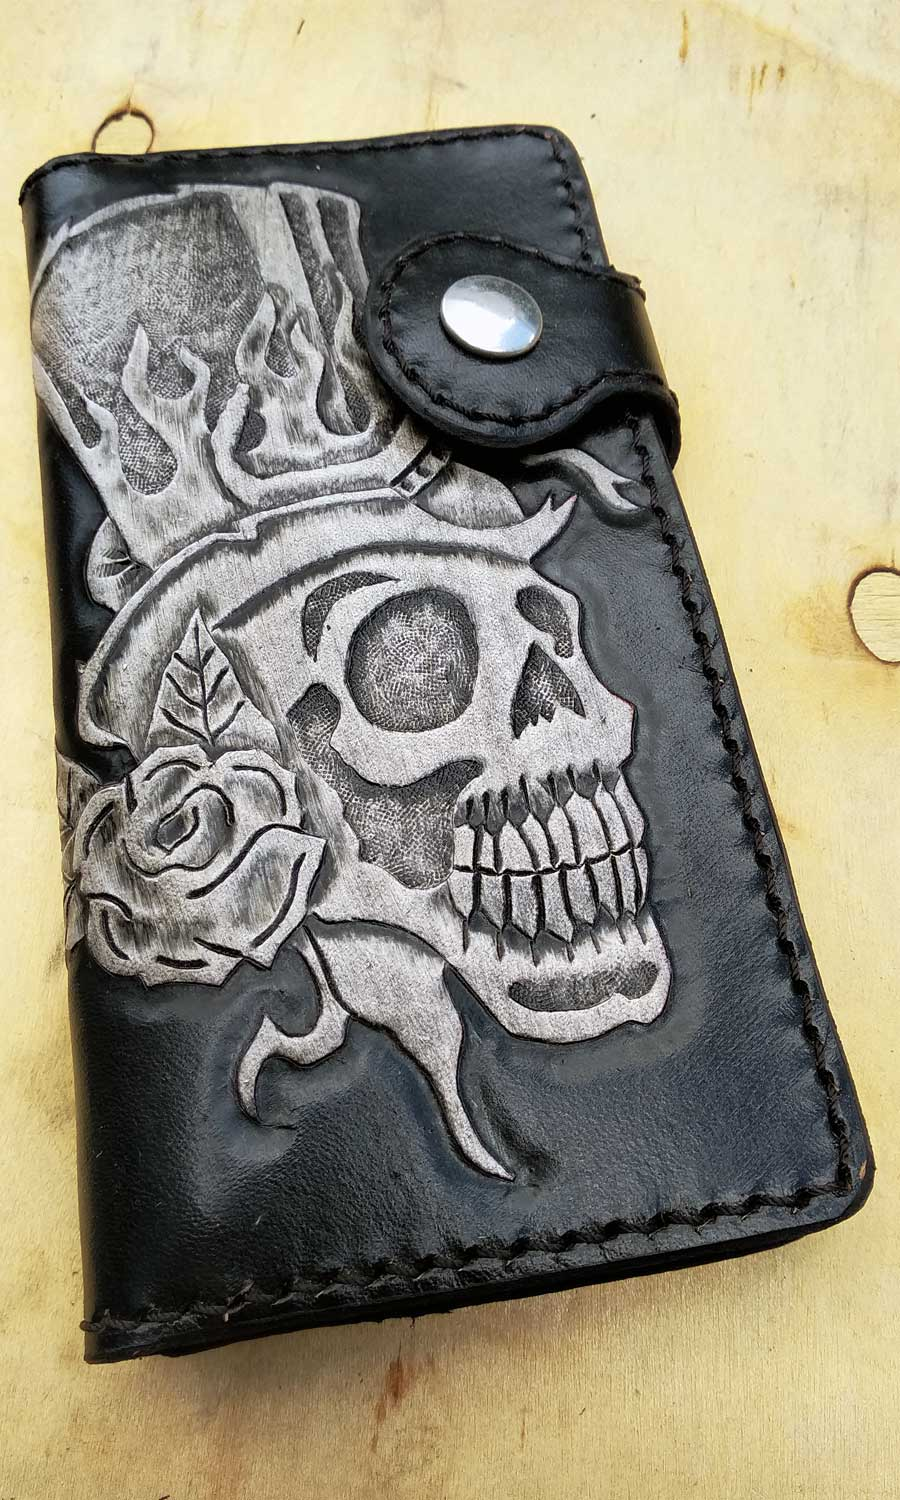 Cow leather wallet style biker with skull by another way of life